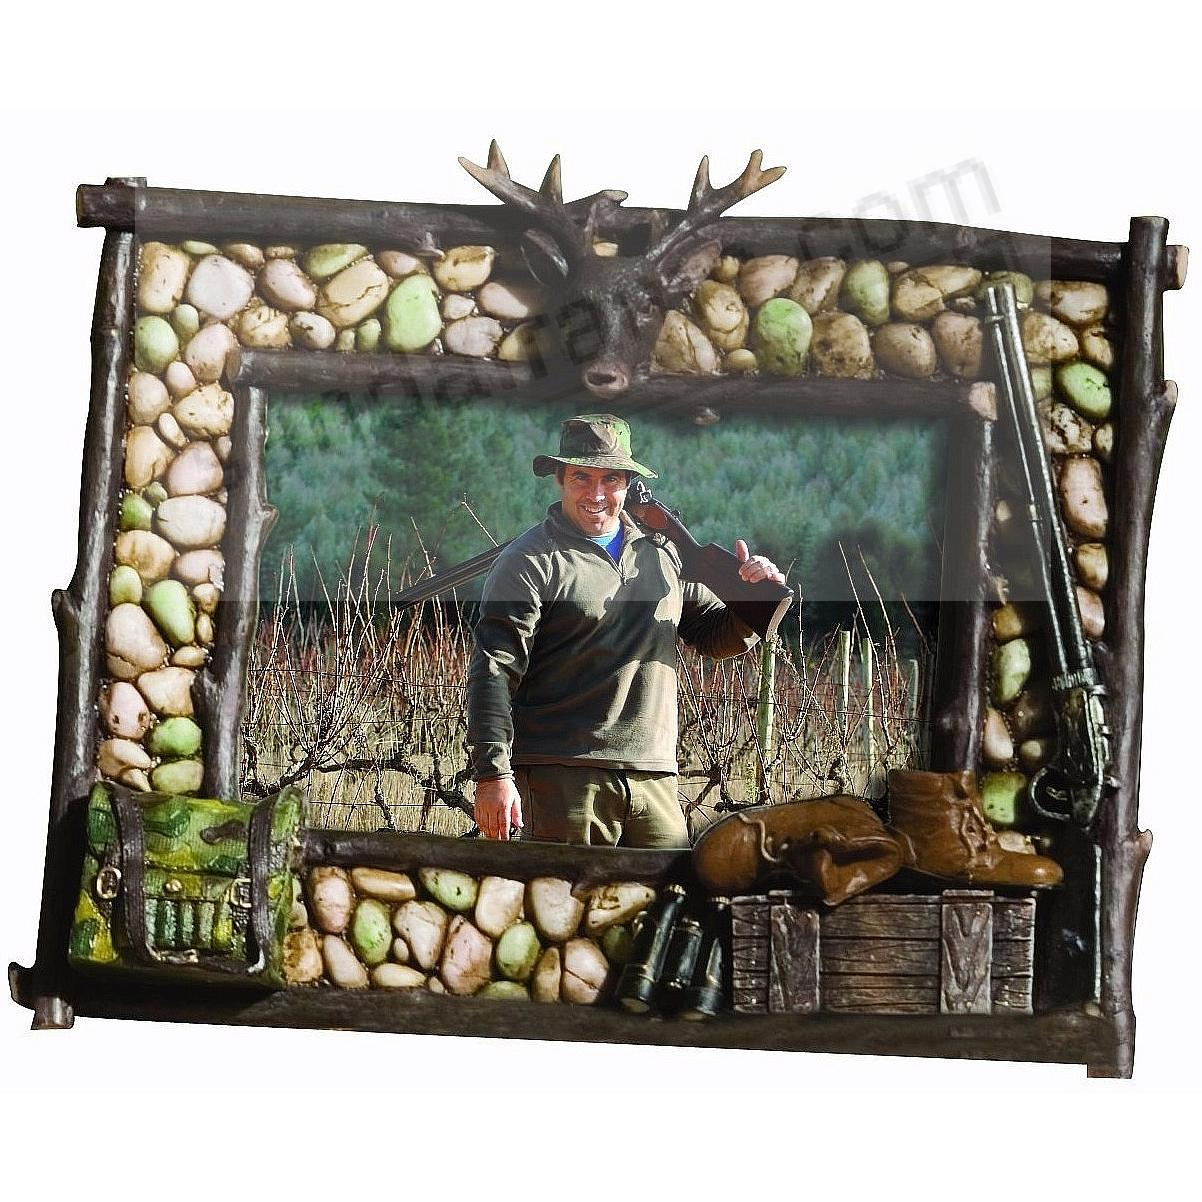 PEBBLE RIDGE HUNTING hand painted frame - Picture Frames, Photo ...